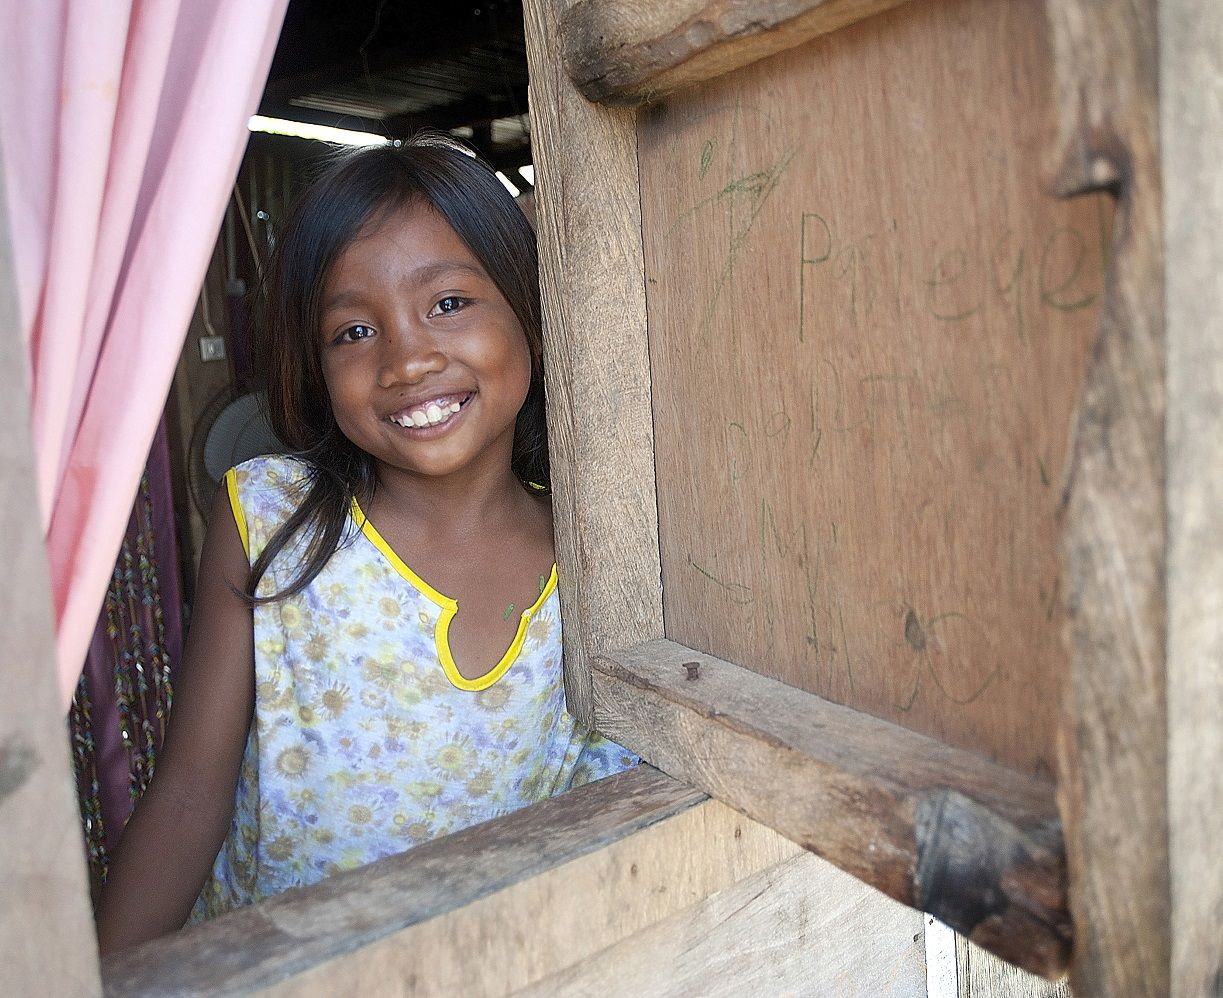 Edilen's smile shows the peace that a stable home brings. Not so long ago, Edilen and her family lived through the terrifying winds and aftermath of Typhoon Haiyan. The family very nearly lost hope when they saw the destruction all around, but a shelter kit distributed by Habitat Philippines helped them rebuild — and smile once again.